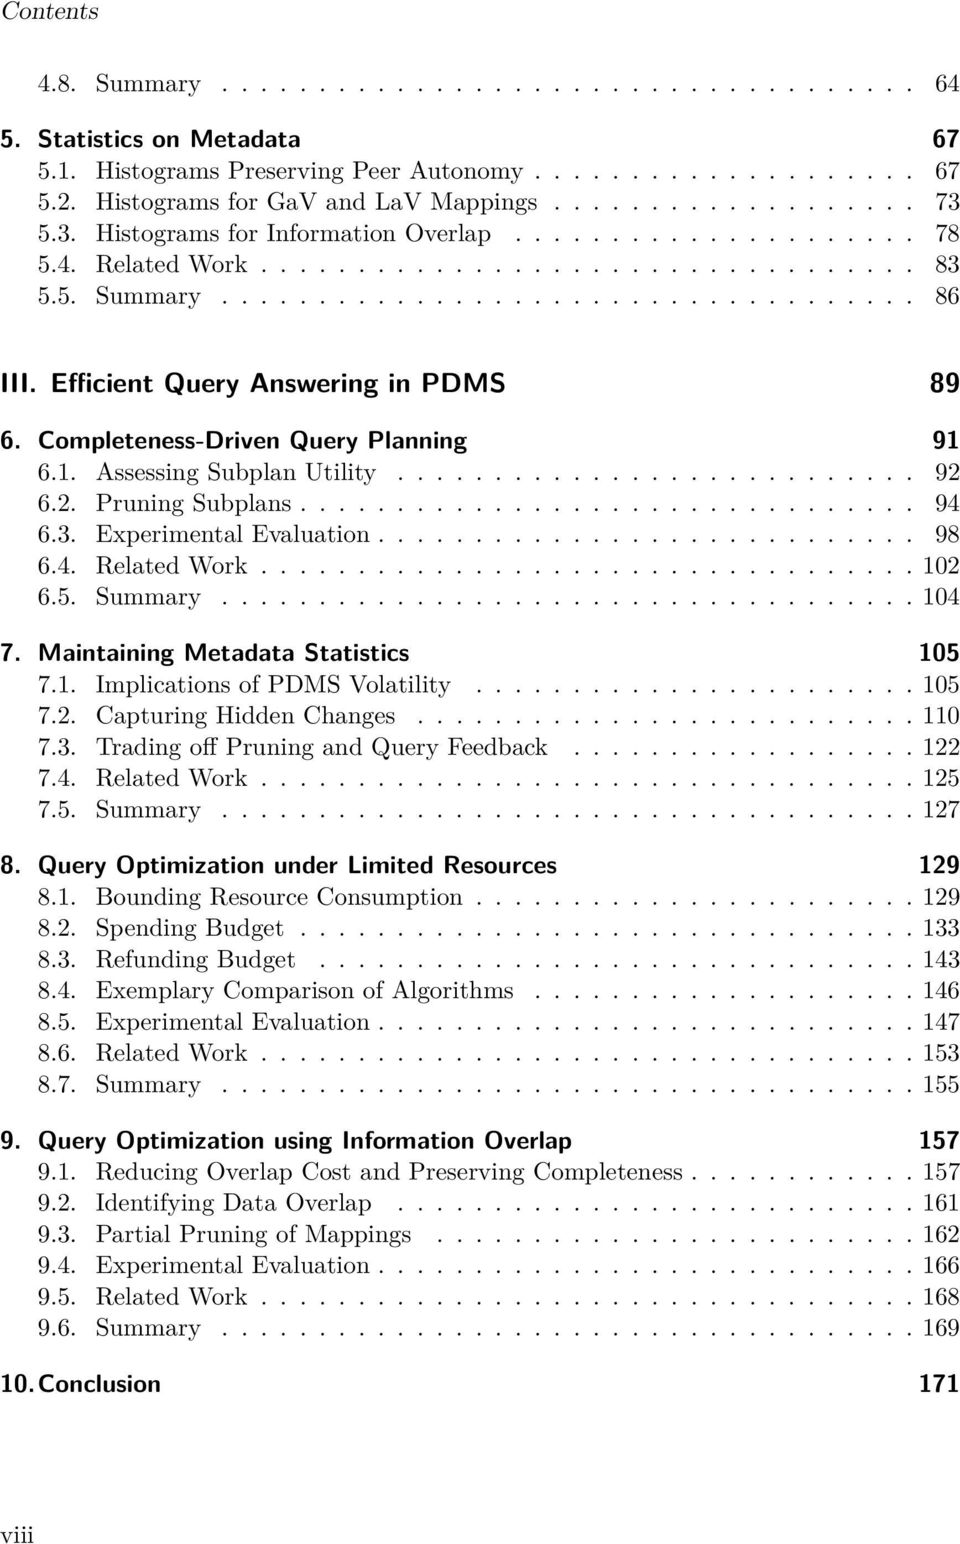 Efficient Query Answering in PDMS 89 6. Completeness-Driven Query Planning 91 6.1. Assessing Subplan Utility........................... 92 6.2. Pruning Subplans................................ 94 6.3.